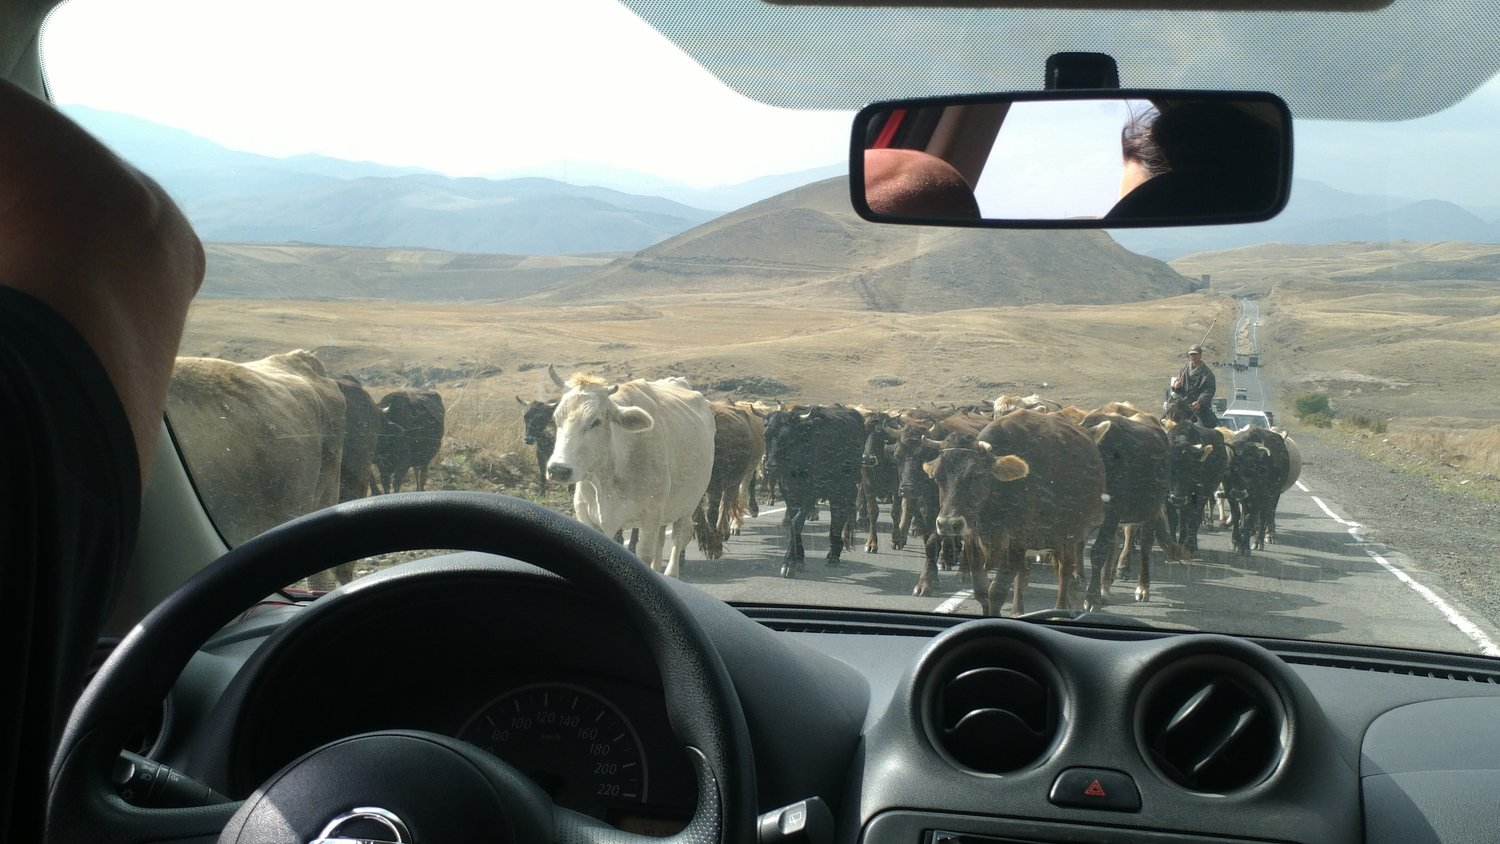 Scenes from an Armenian Road Trip